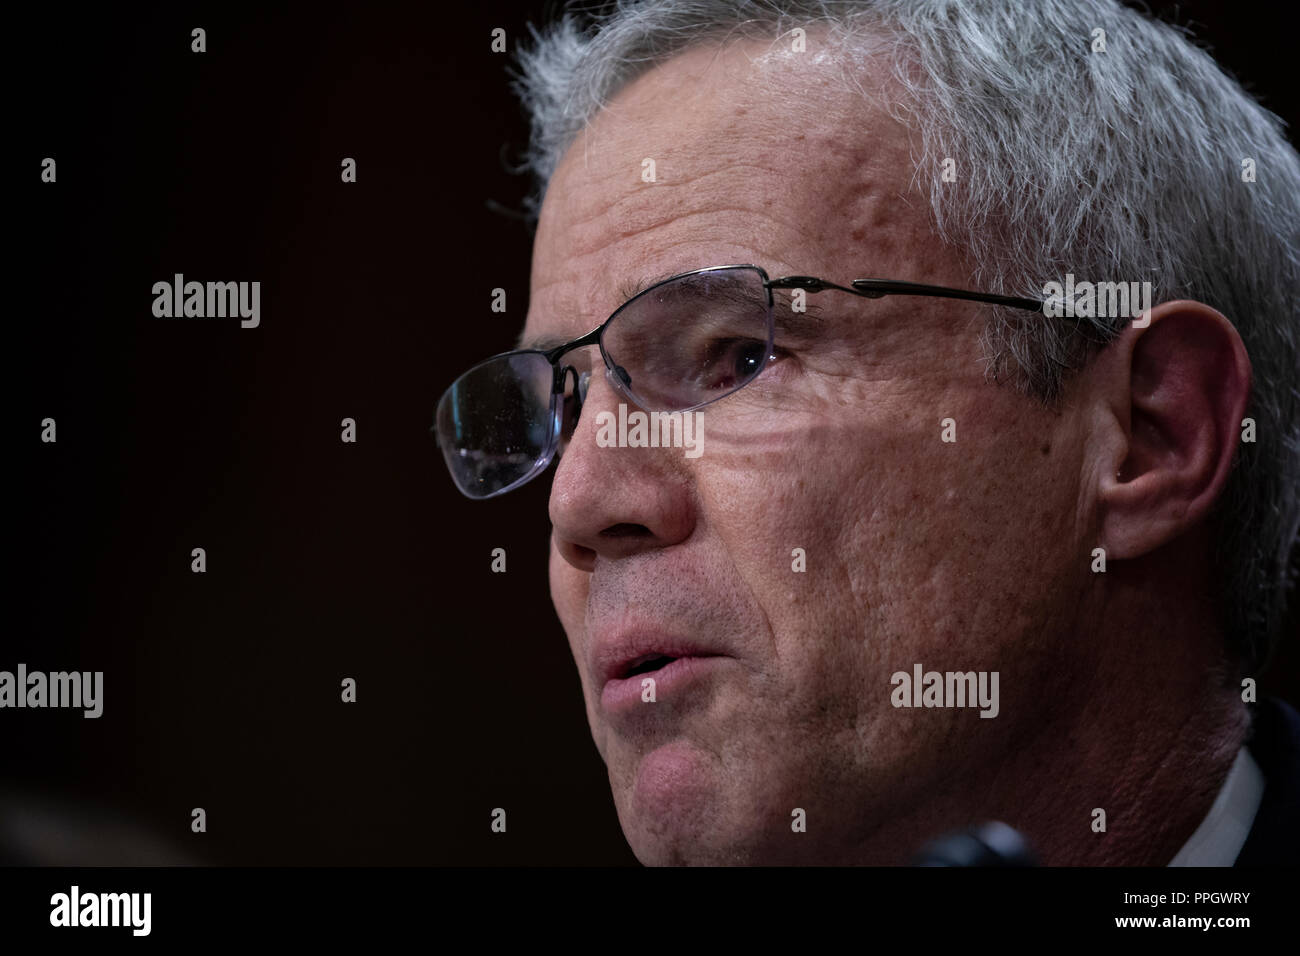 Washington, United States Of America. 25th Sep, 2018. Michael T. Harvey testifies during a hearing to confirm new administrators for the United States Agency for International Development on Capitol Hill in Washington, DC on September 25, 2018. Credit: Alex Edelman/CNP | usage worldwide Credit: dpa/Alamy Live News - Stock Image